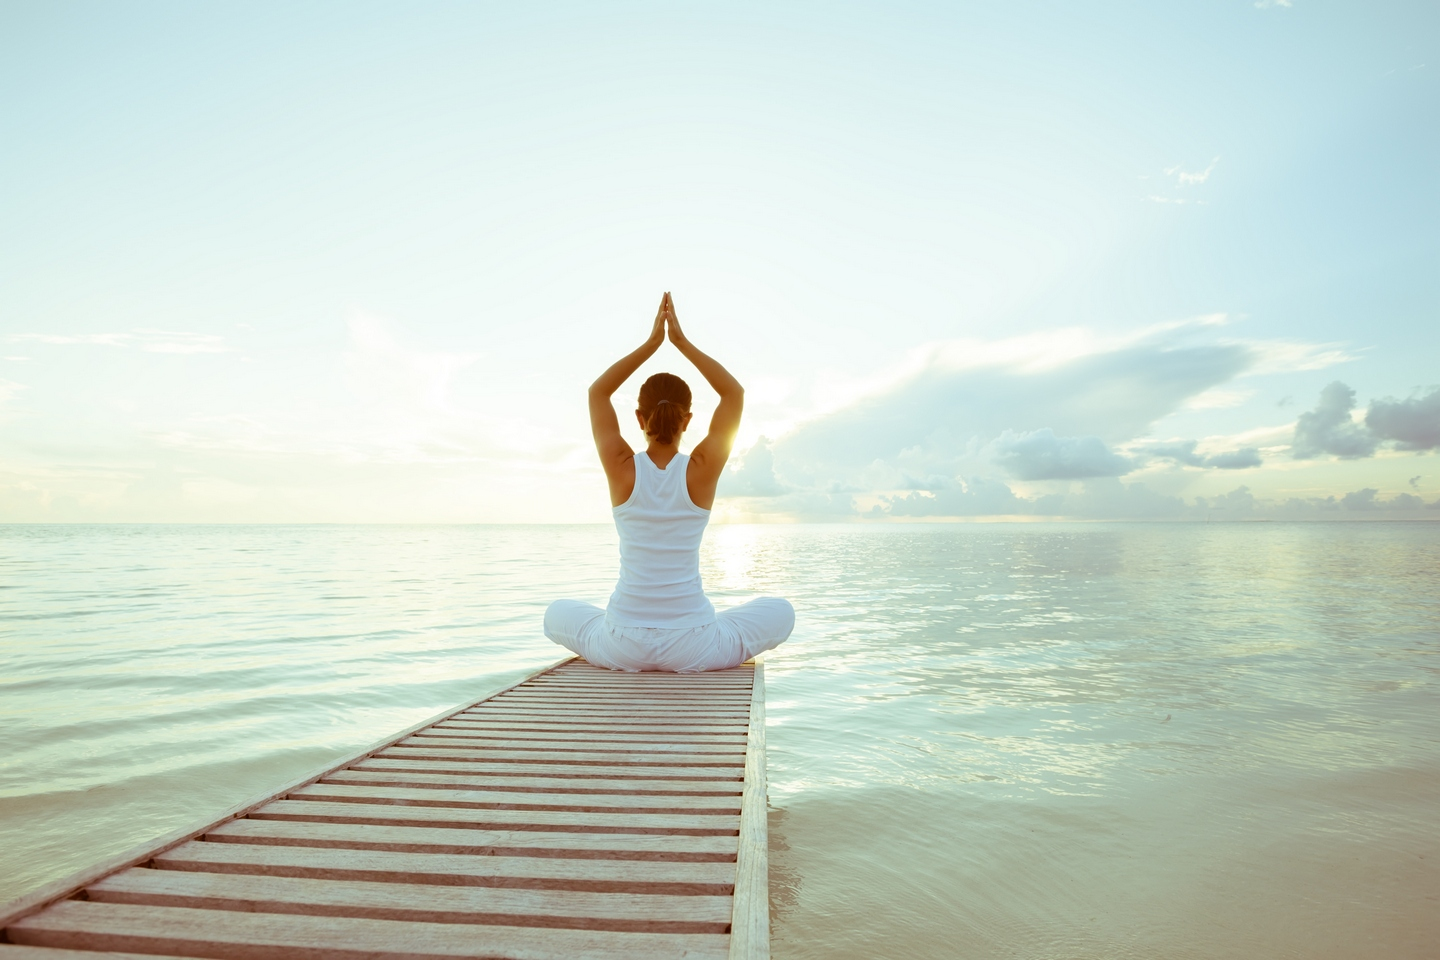 Complement yoga with sound sleep and a balanced diet